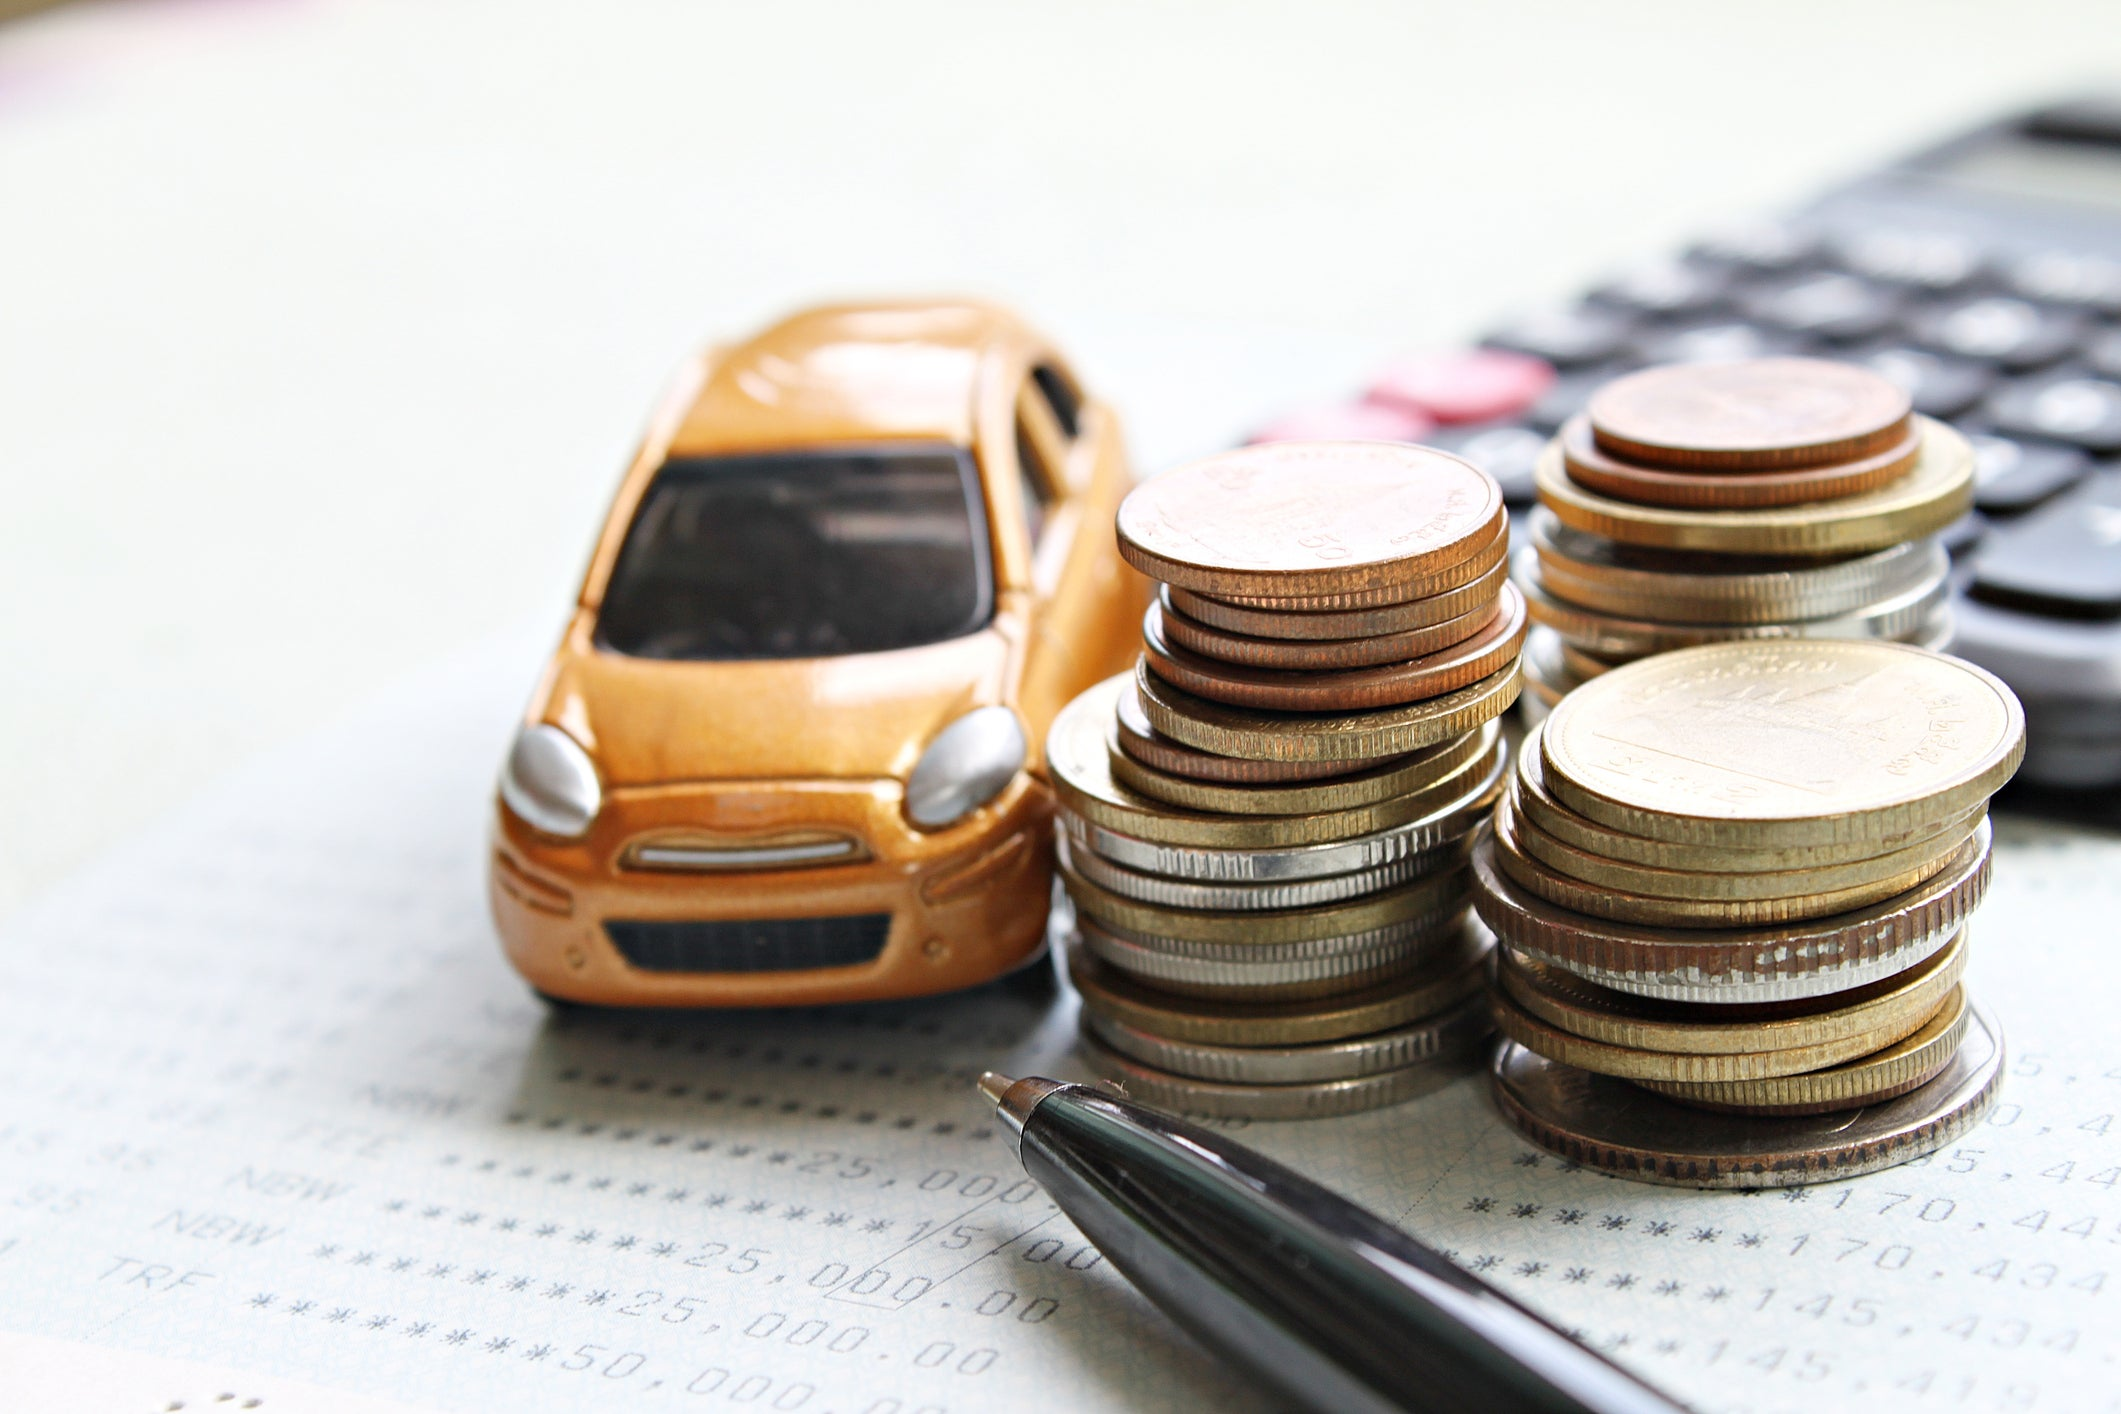 Surprising Facts About The Rental Car Industry The Motley Fool